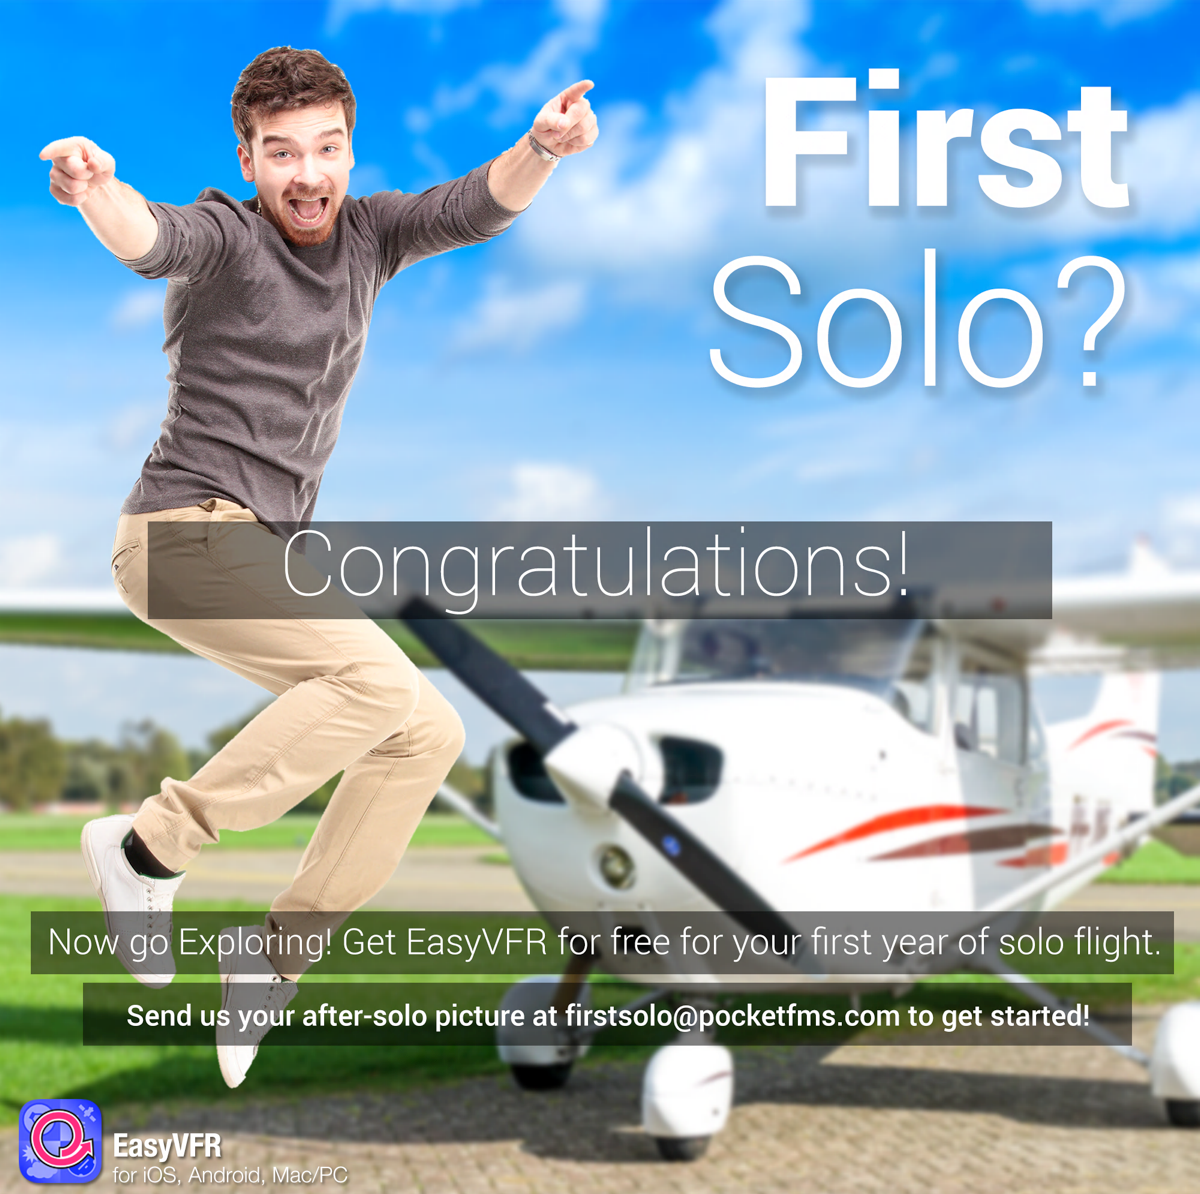 FirstSolo